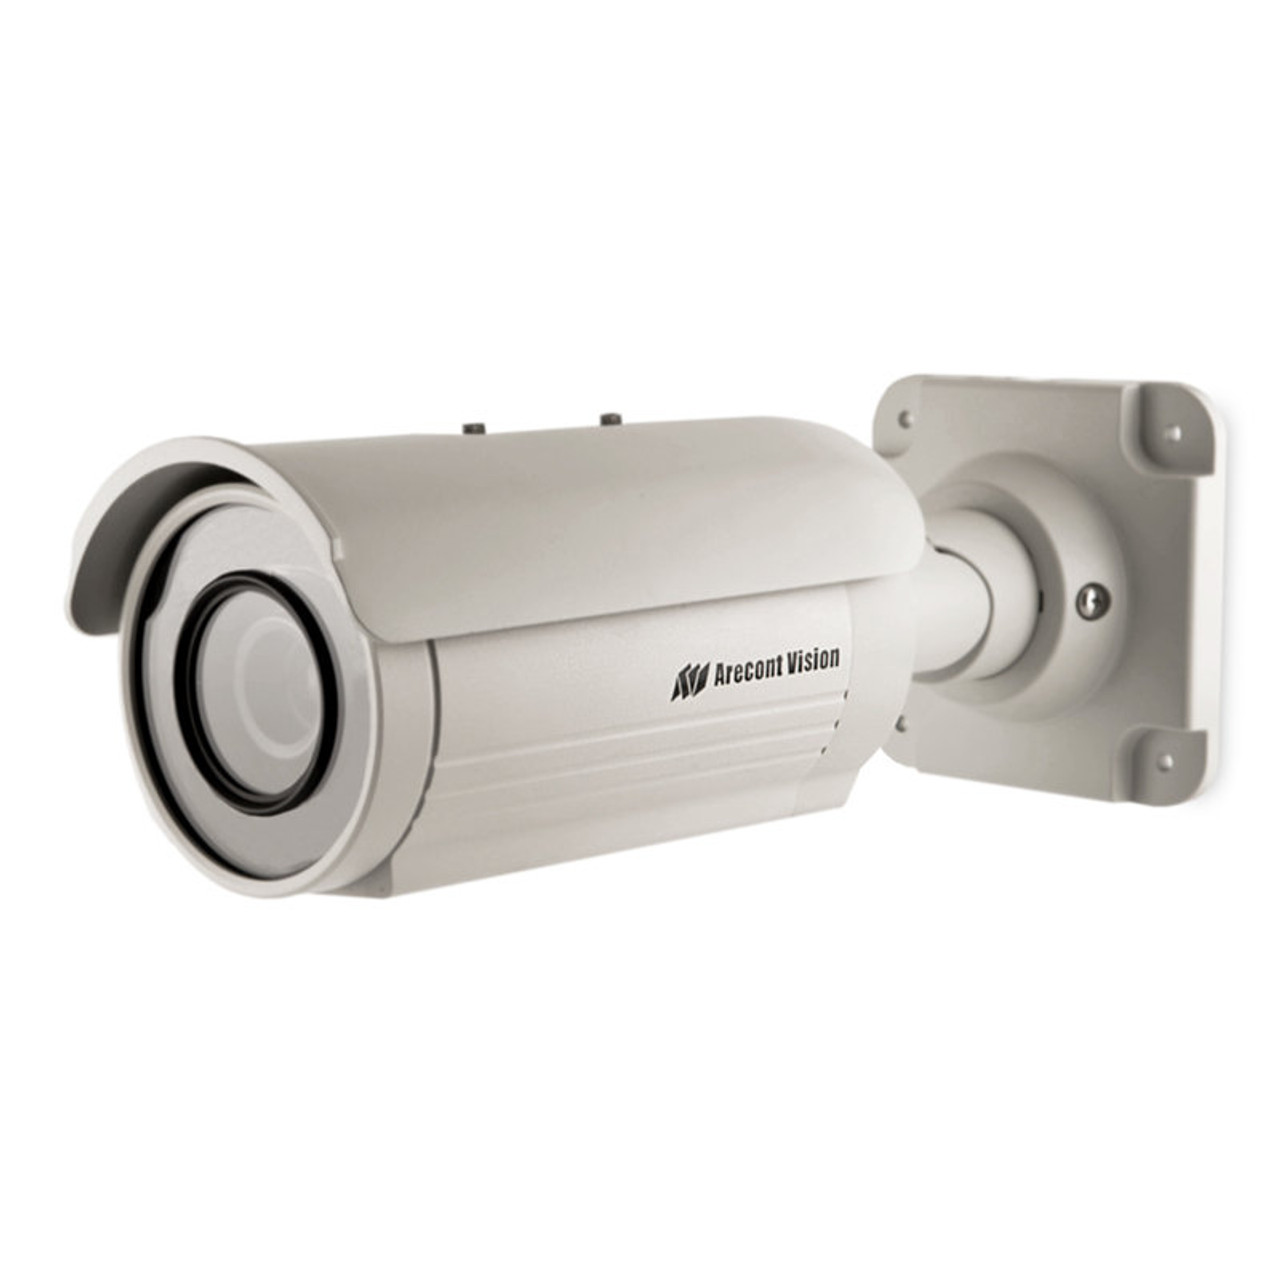 ARECONT VISION AV3256DN IP CAMERA DRIVERS FOR WINDOWS 10